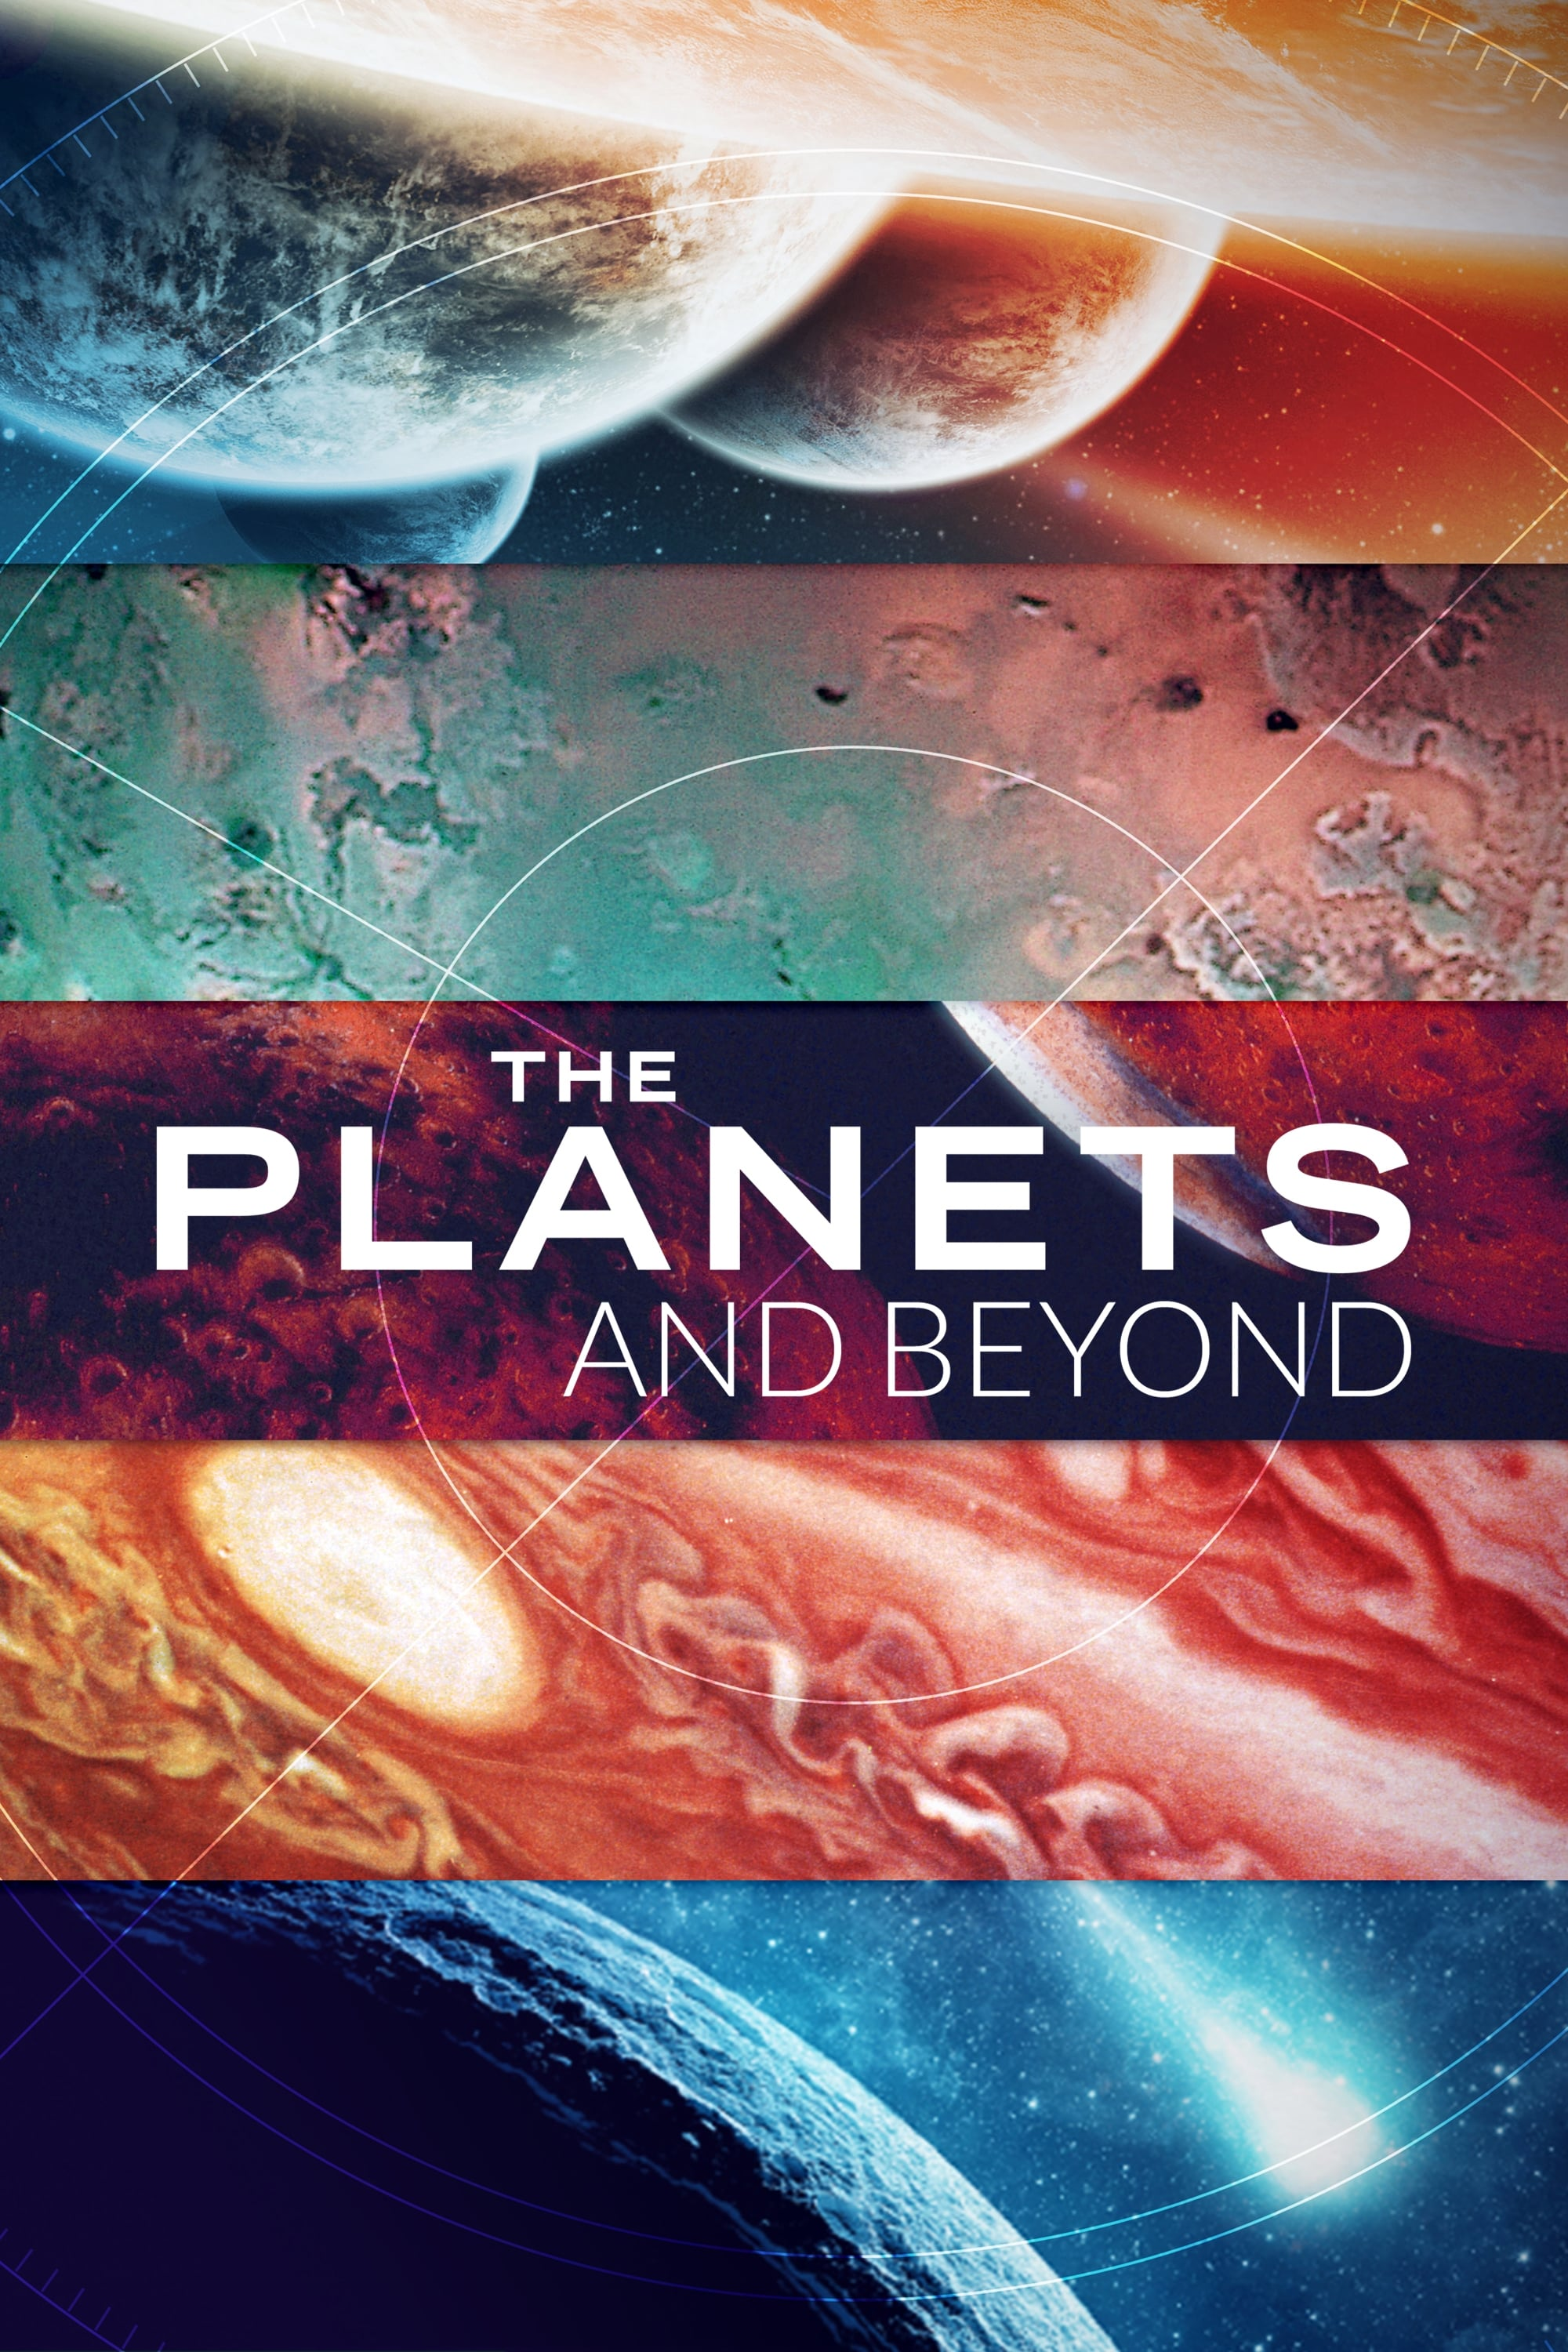 The Planets and Beyond (2017)